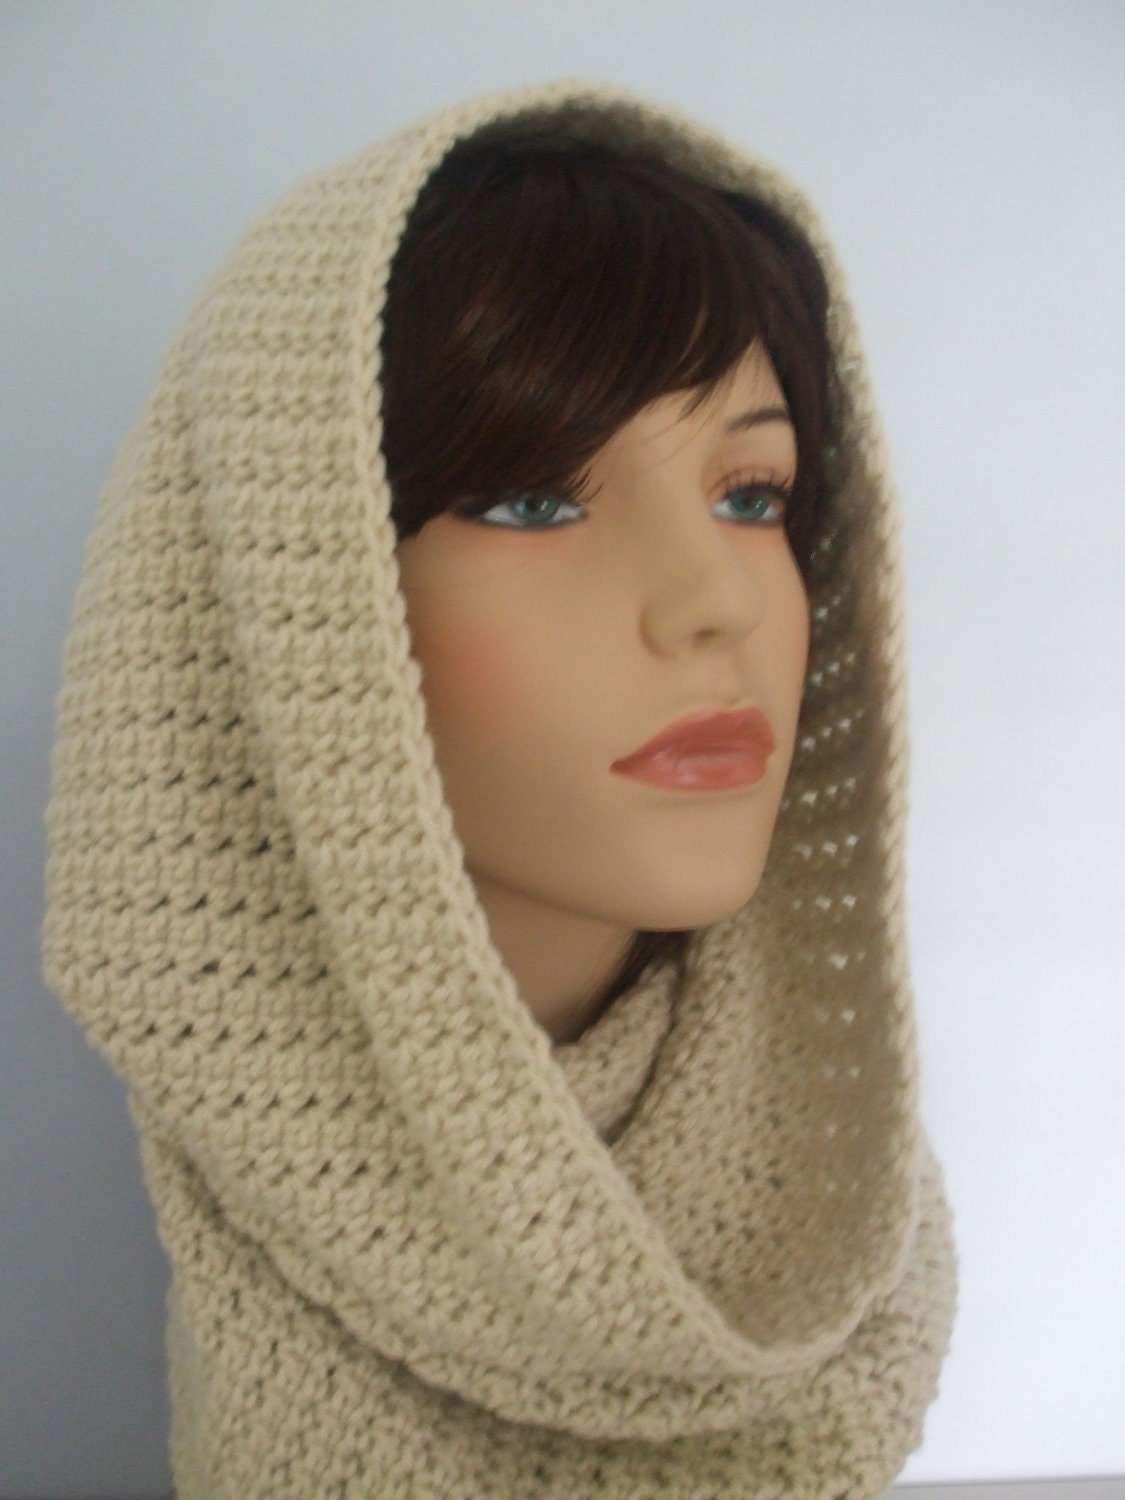 All In One Crochet Cowl Neck Hood and Scarf Item by yarnnscents Cowl Neck Scarves Crochet